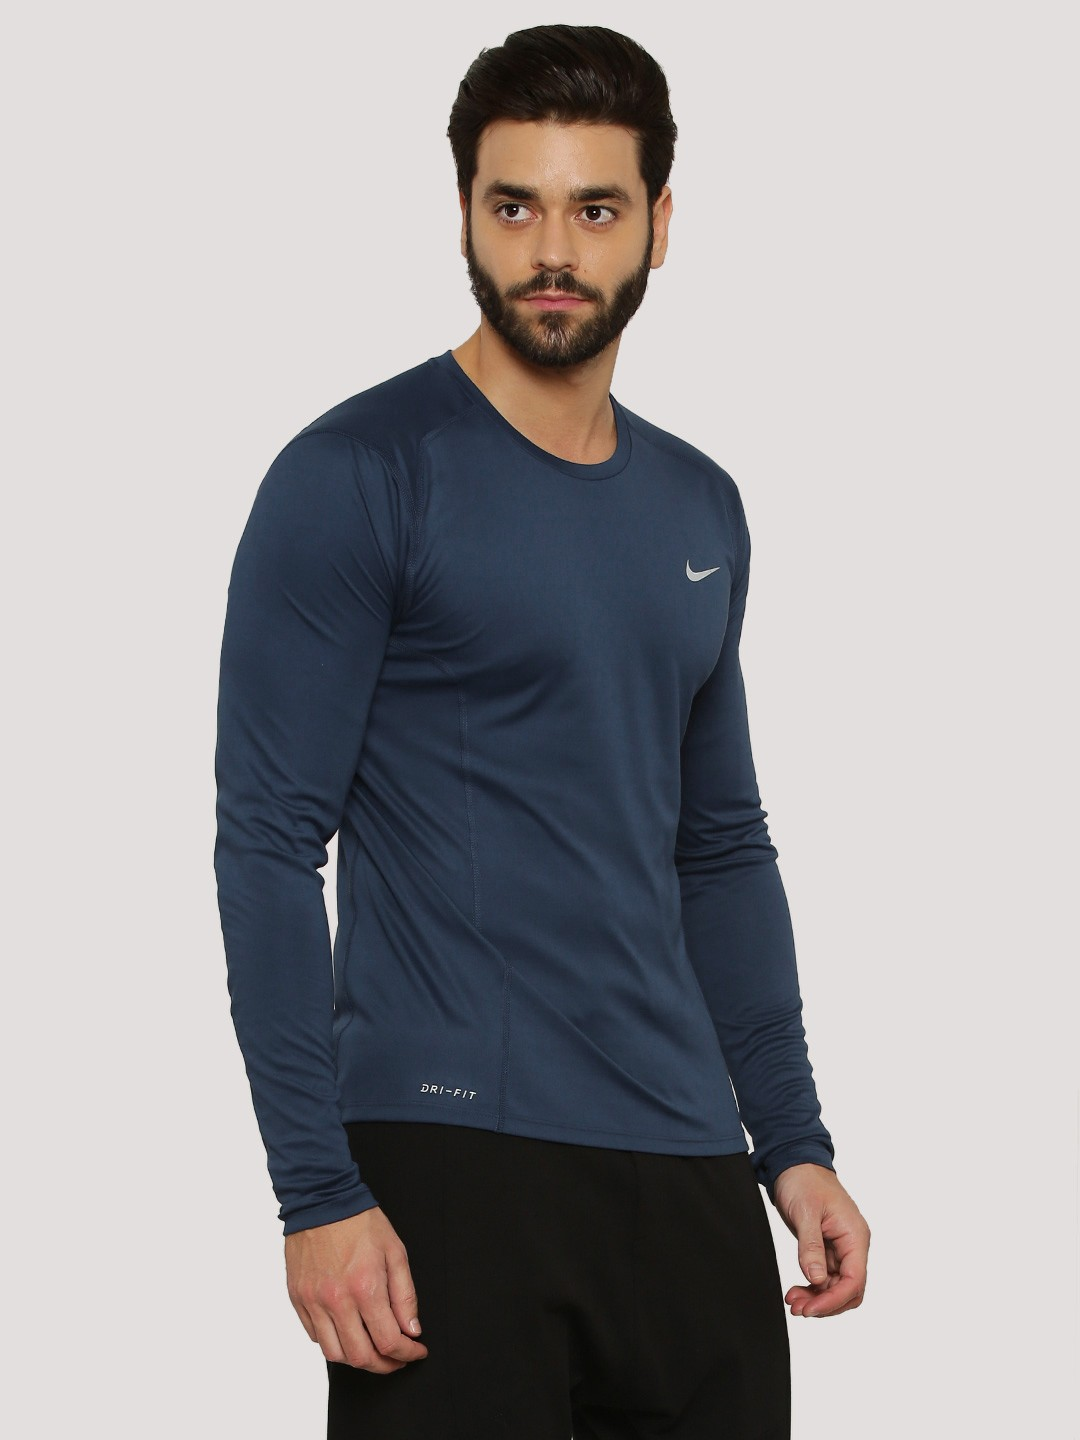 Buy nike dri fit t shirt in long sleeves for men men 39 s for Buy dri fit shirts